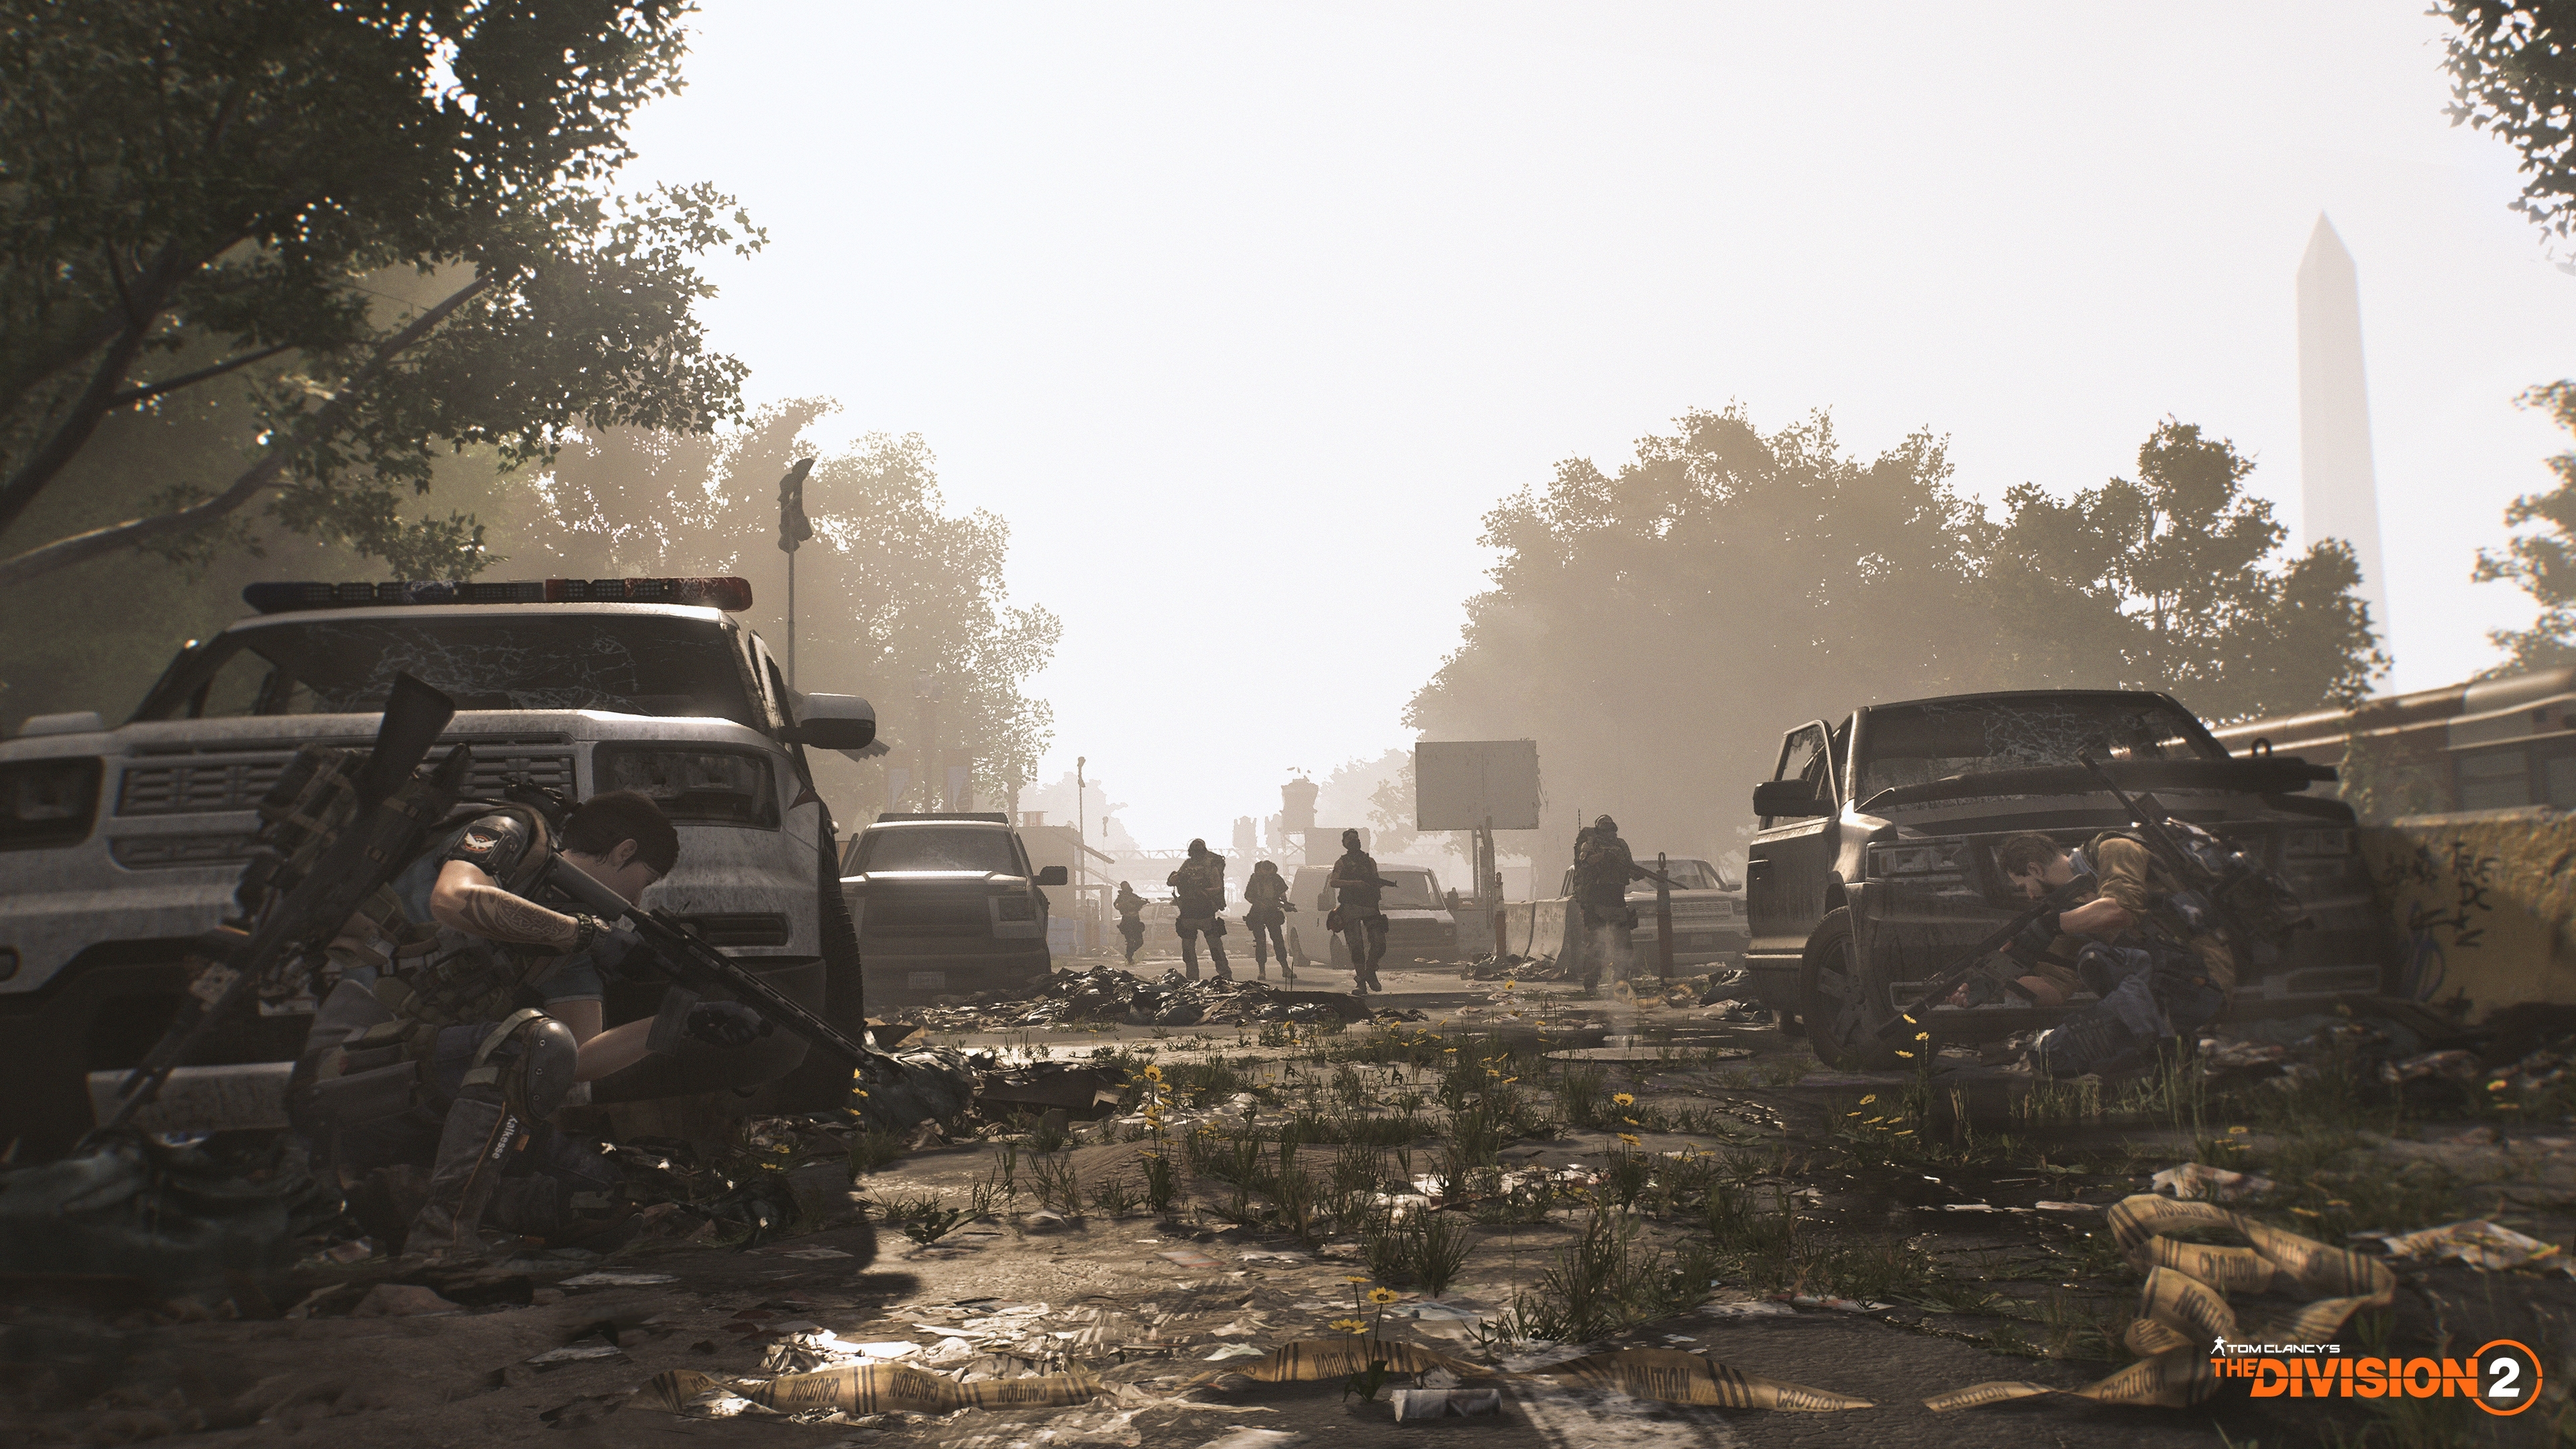 The Division 2 Hands-on Preview - Welcome to Washington